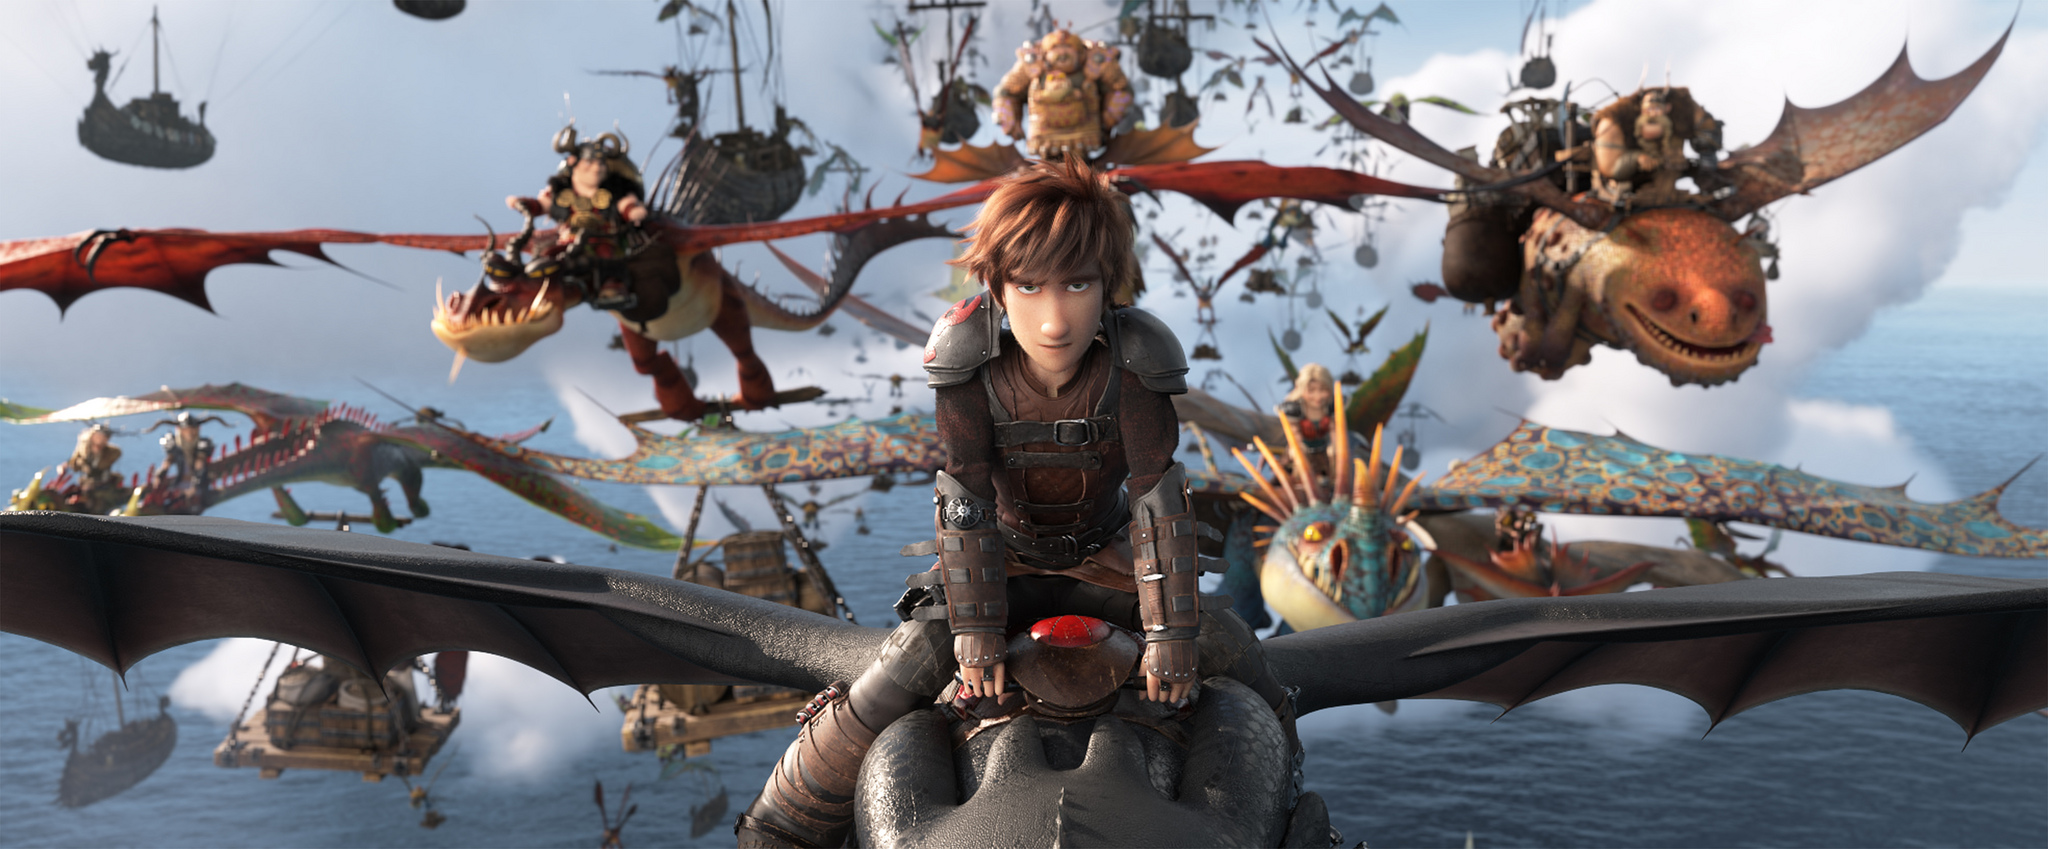 """How to Train Your Dragon 3"" Debuts to Series-Best $55 Million!"